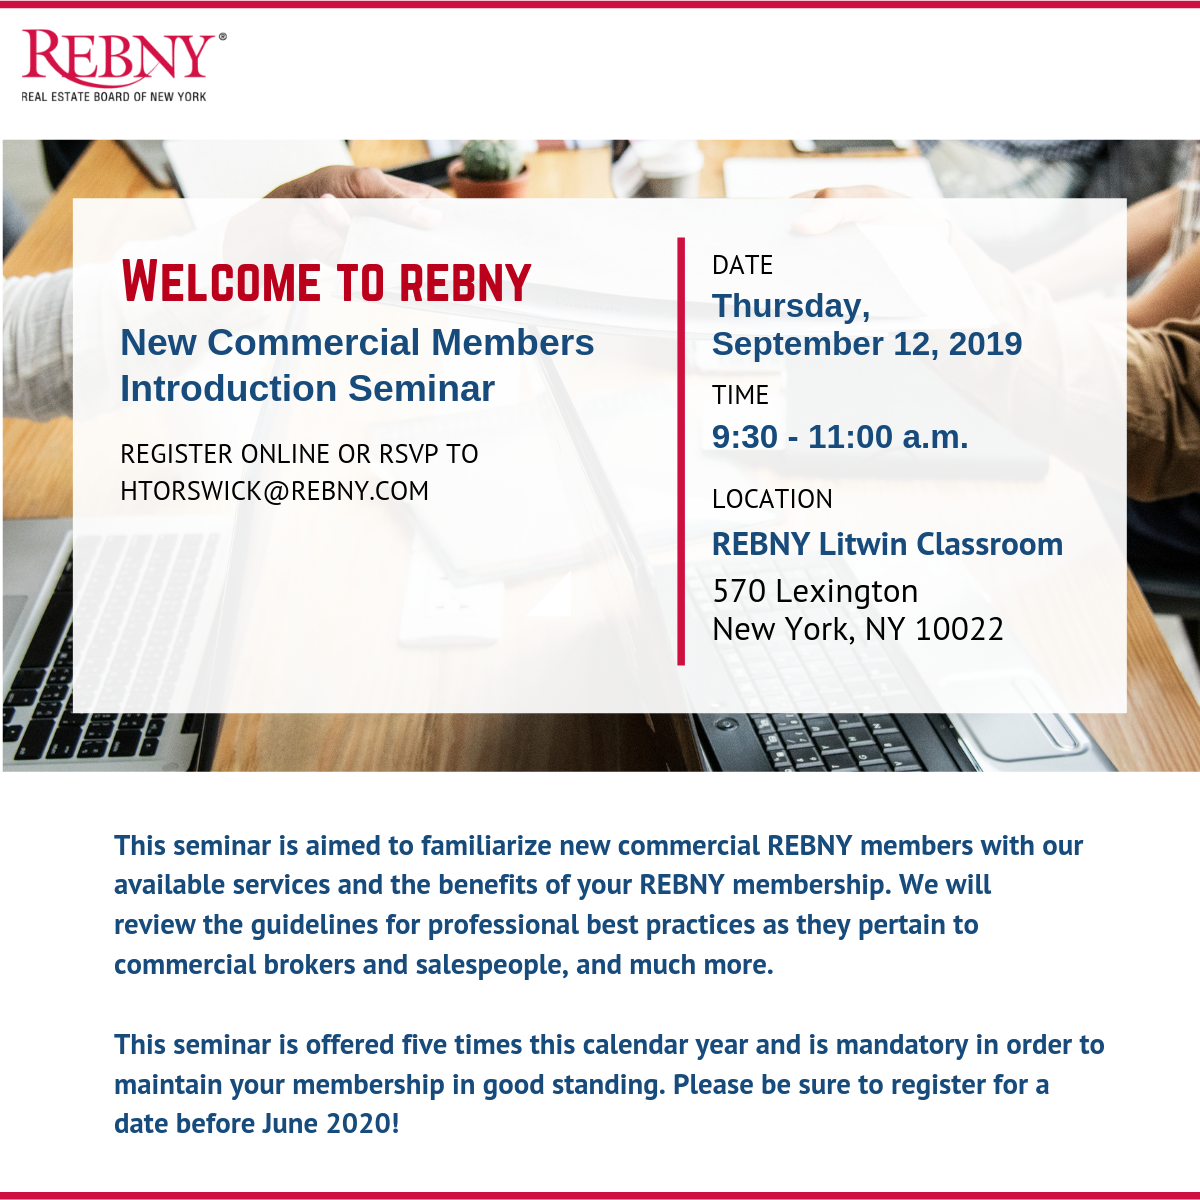 Welcome to REBNY Commercial Seminar